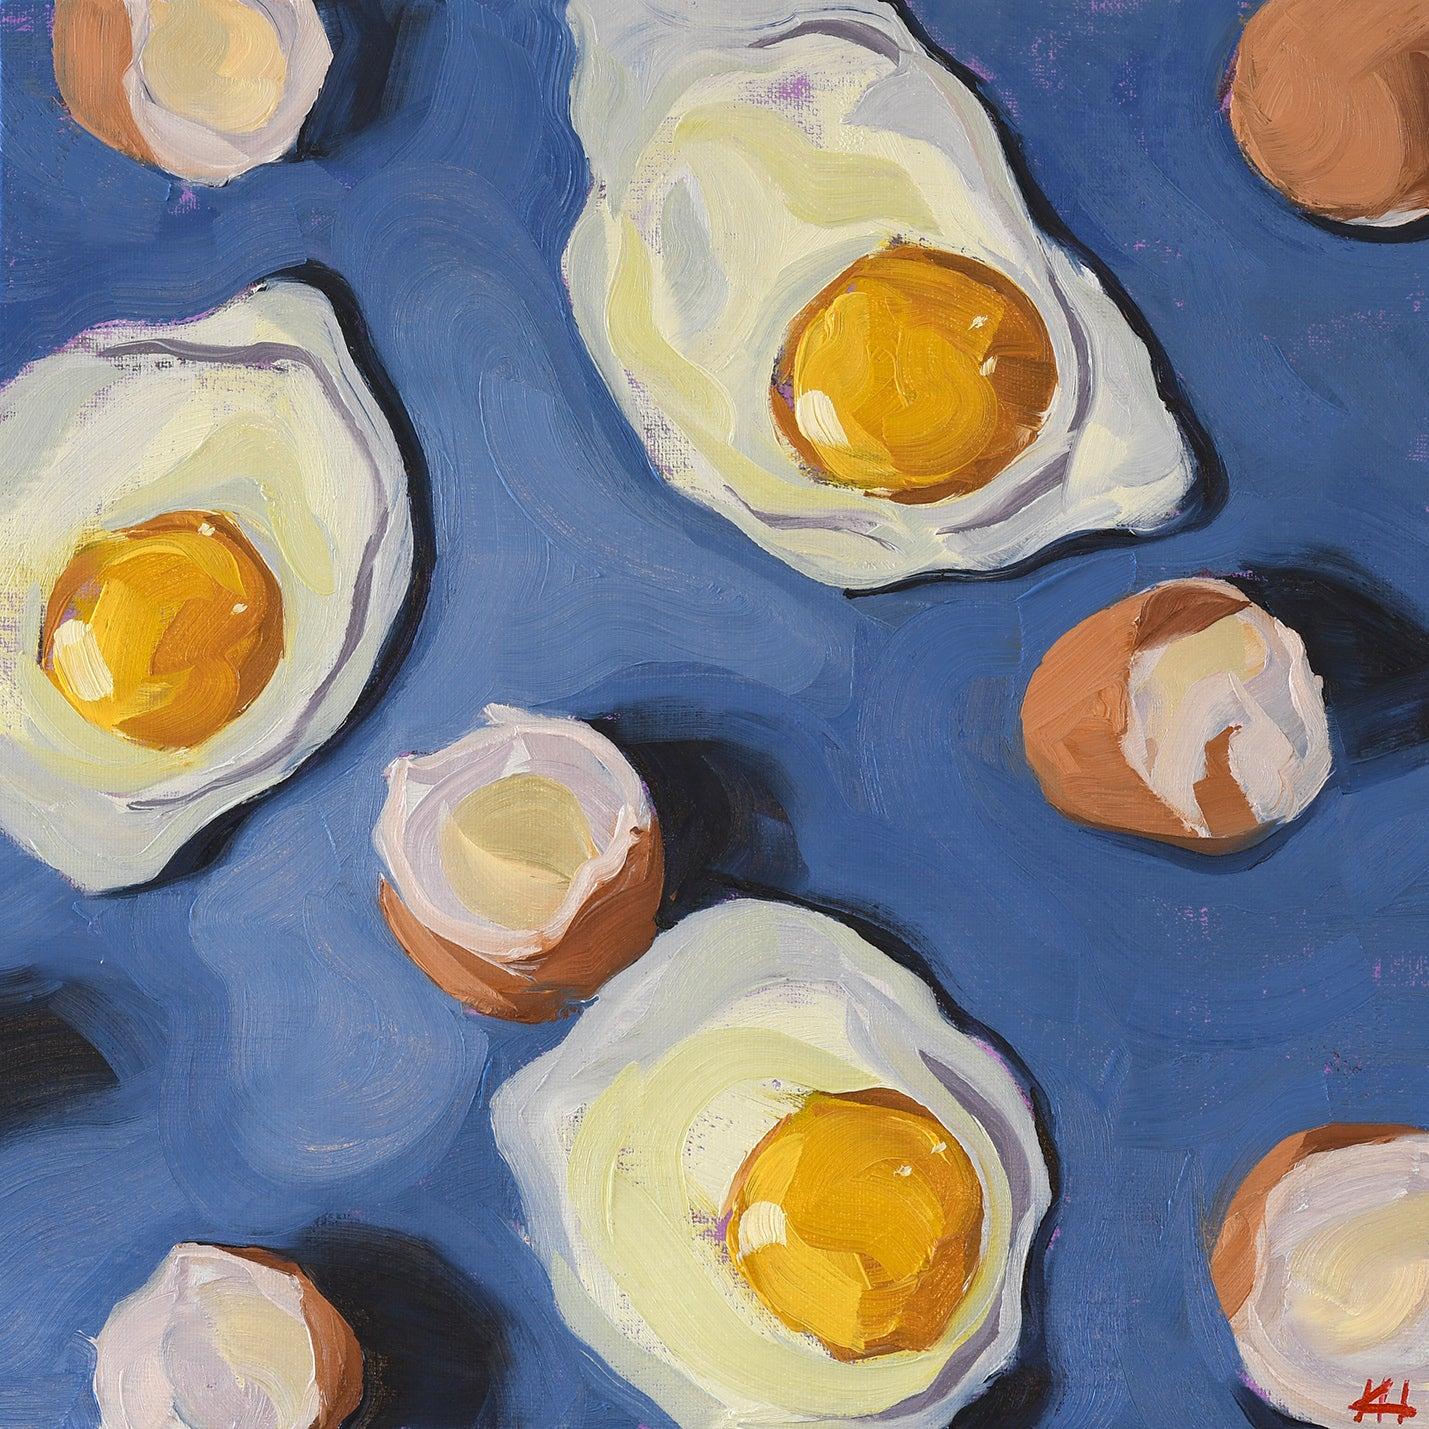 """I've Finally Cracked"", Egg and Eggshell Kitchen Oil Painting"